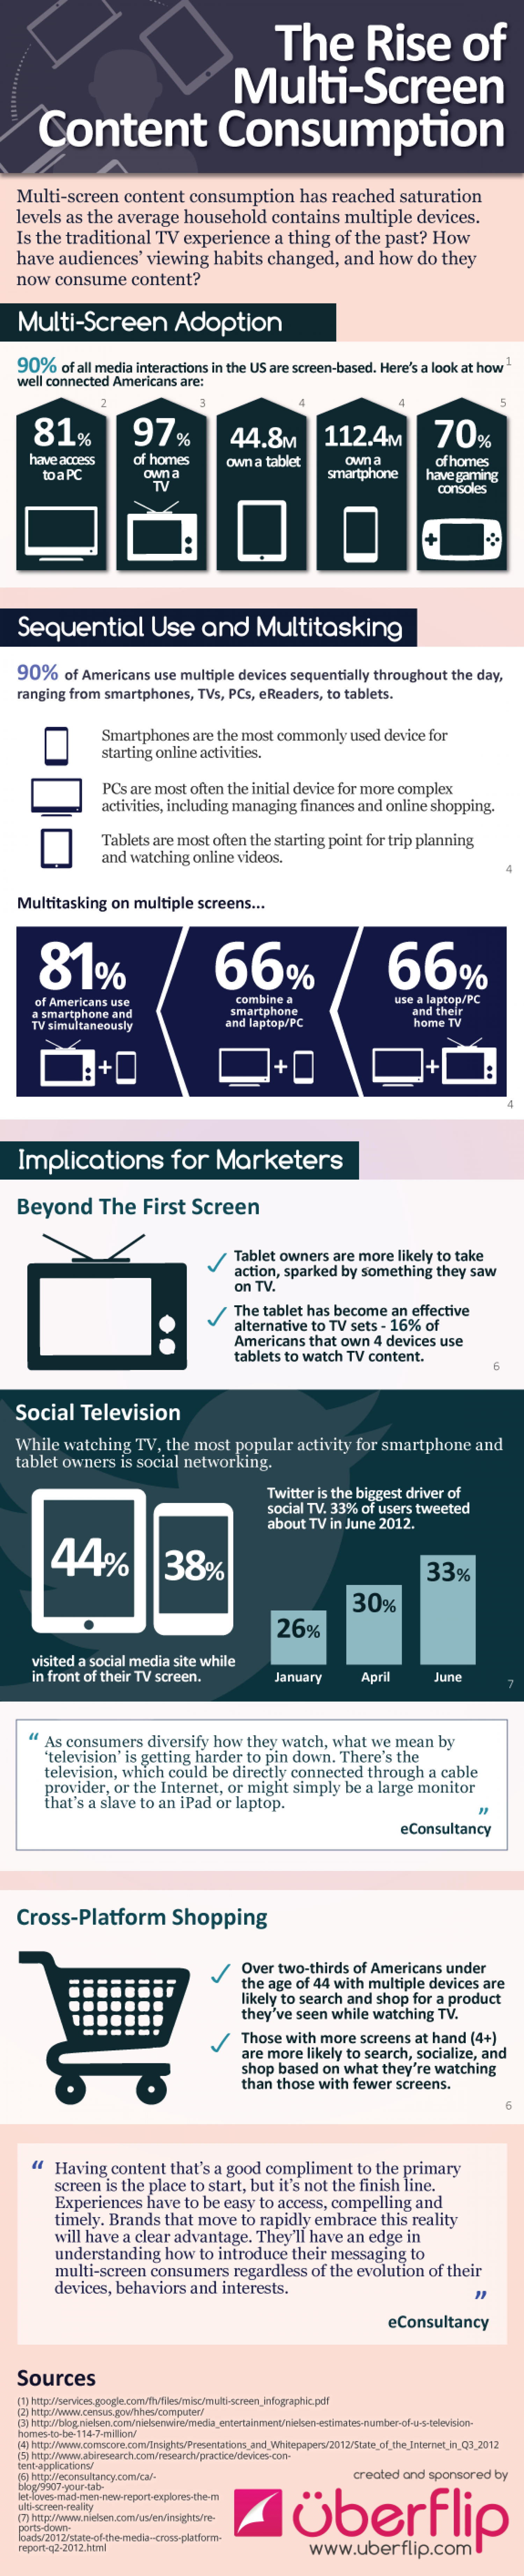 The Rise of Multi-Screen Content Consumption Infographic